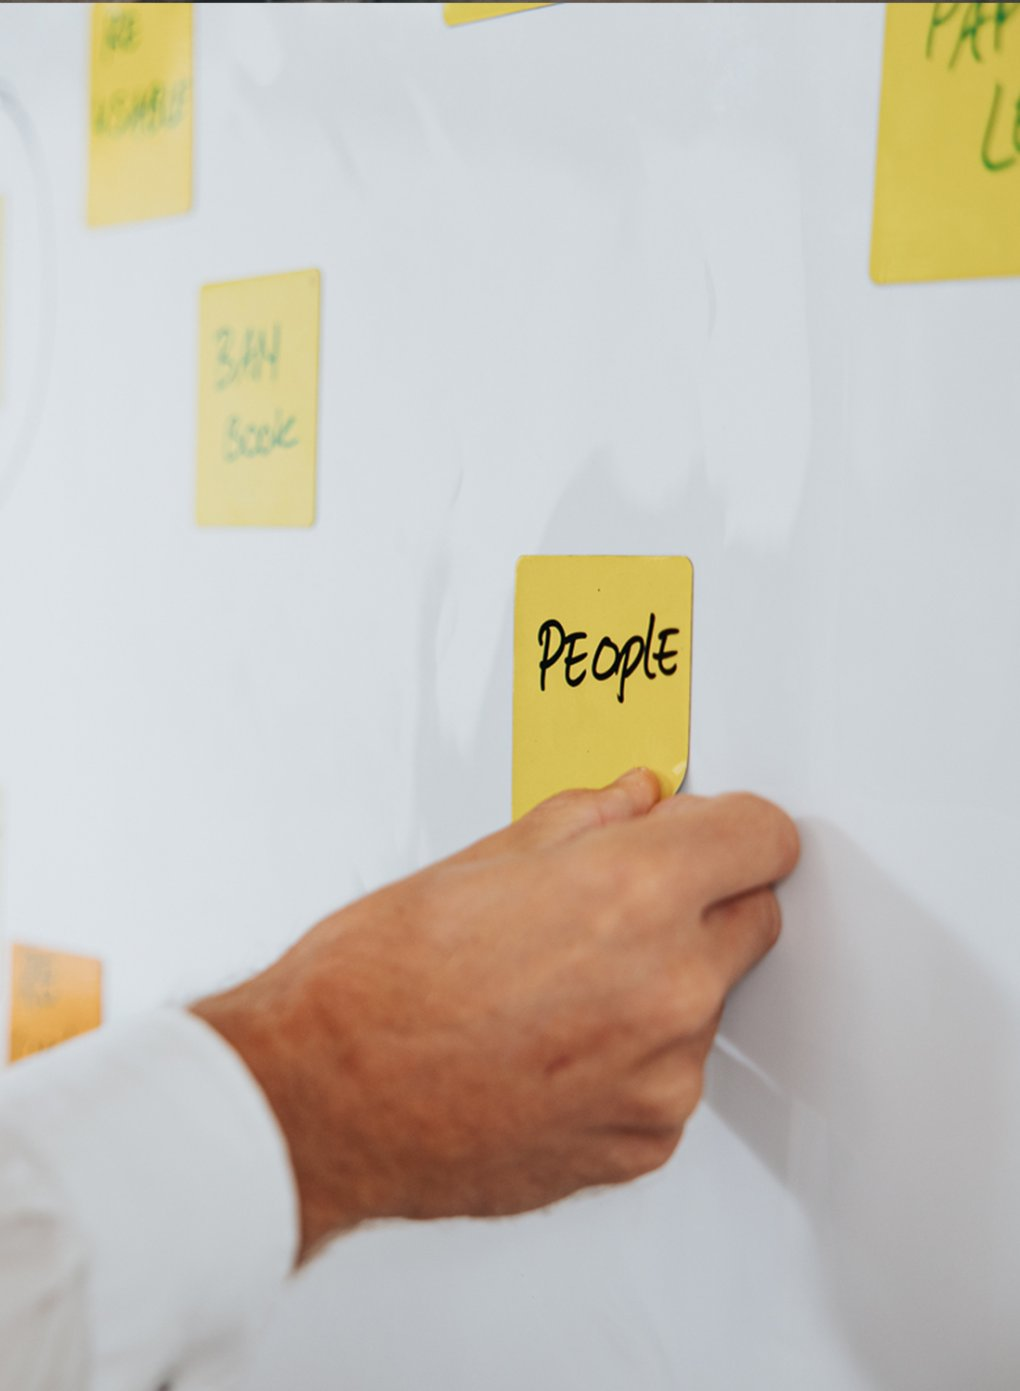 Using Bambook Sticky-notes with the Bambook Stick-on